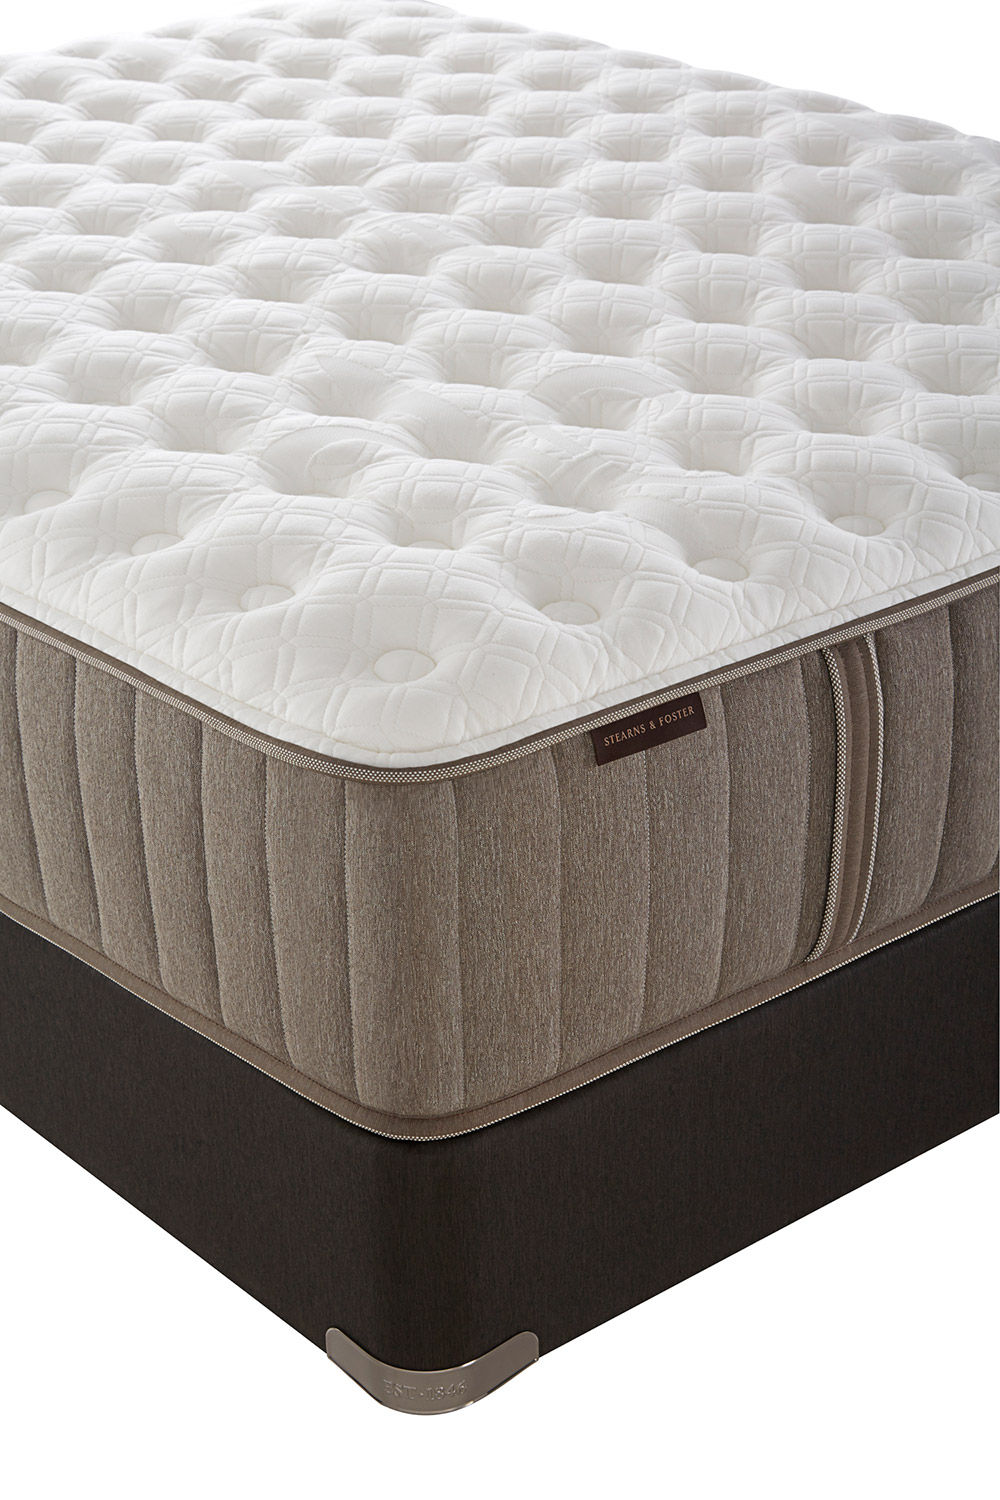 Picture of Stearns & Foster Scarborough Firm Tighttop Full Mattress Set